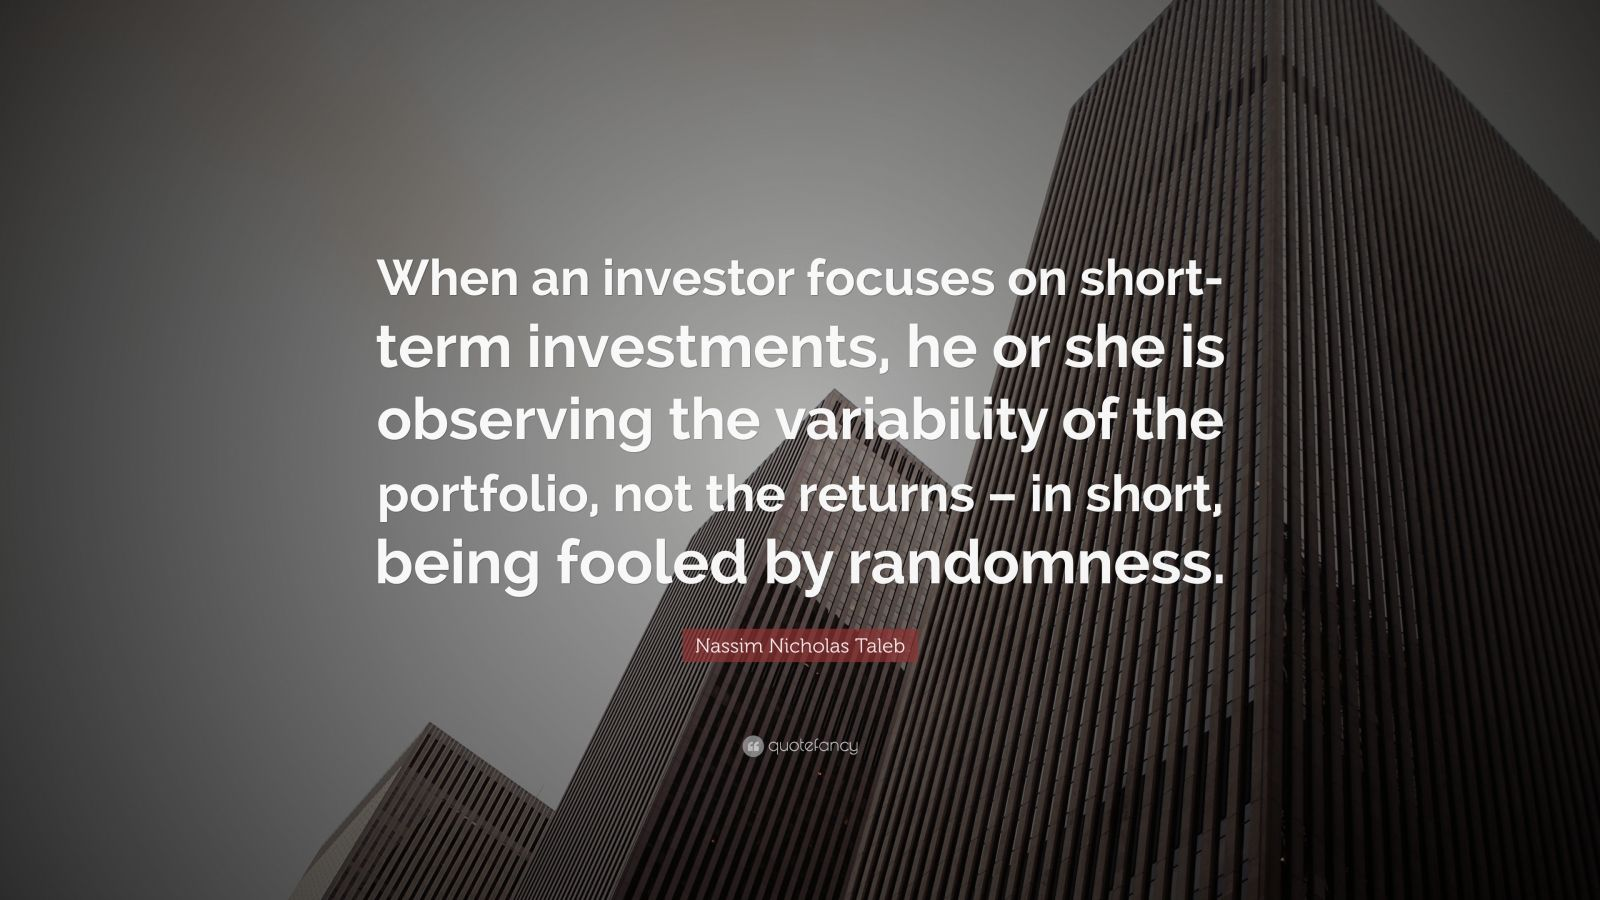 """Nassim Nicholas Taleb Quote: """"When an investor focuses on short-term investments, he or she is observing the variability of the portfolio, not the returns – in short, being fooled by randomness."""""""